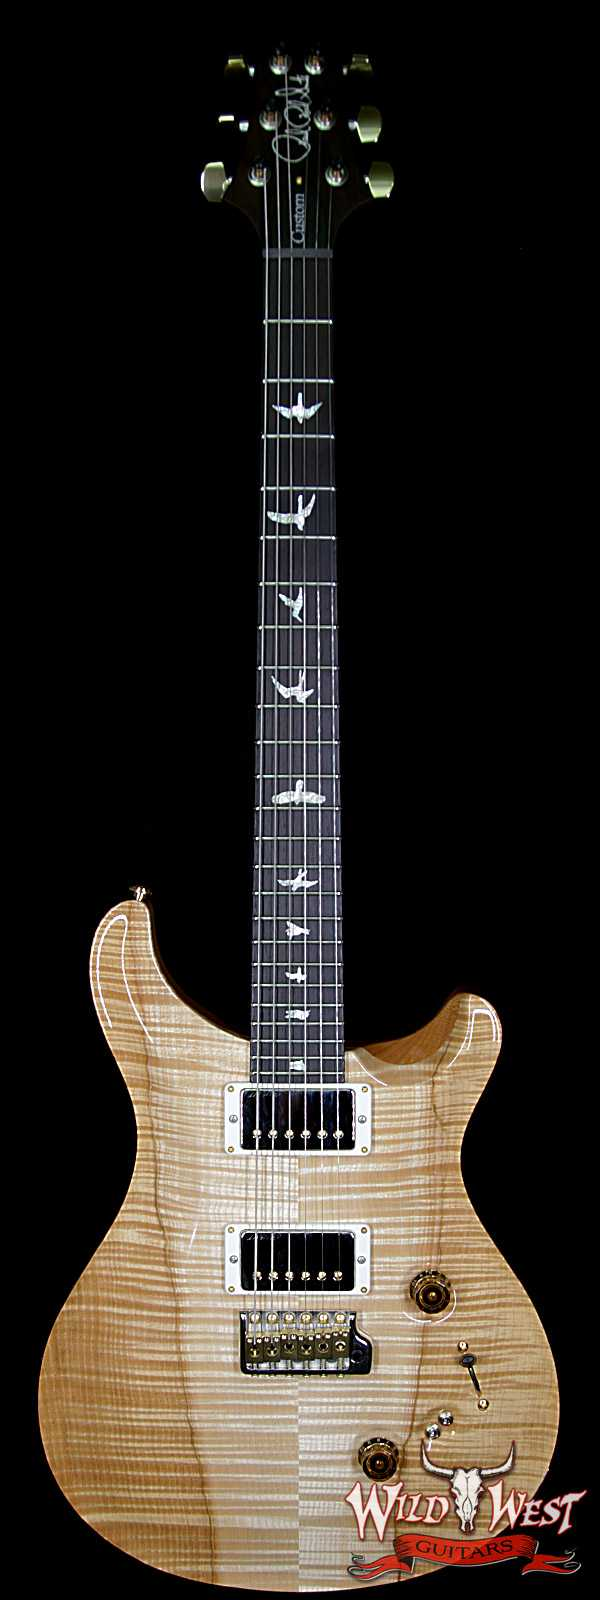 PRS Wood Library 10 Top Custom 24-08 Flame Maple Top Brazilian Rosewood Fingerboard Natural